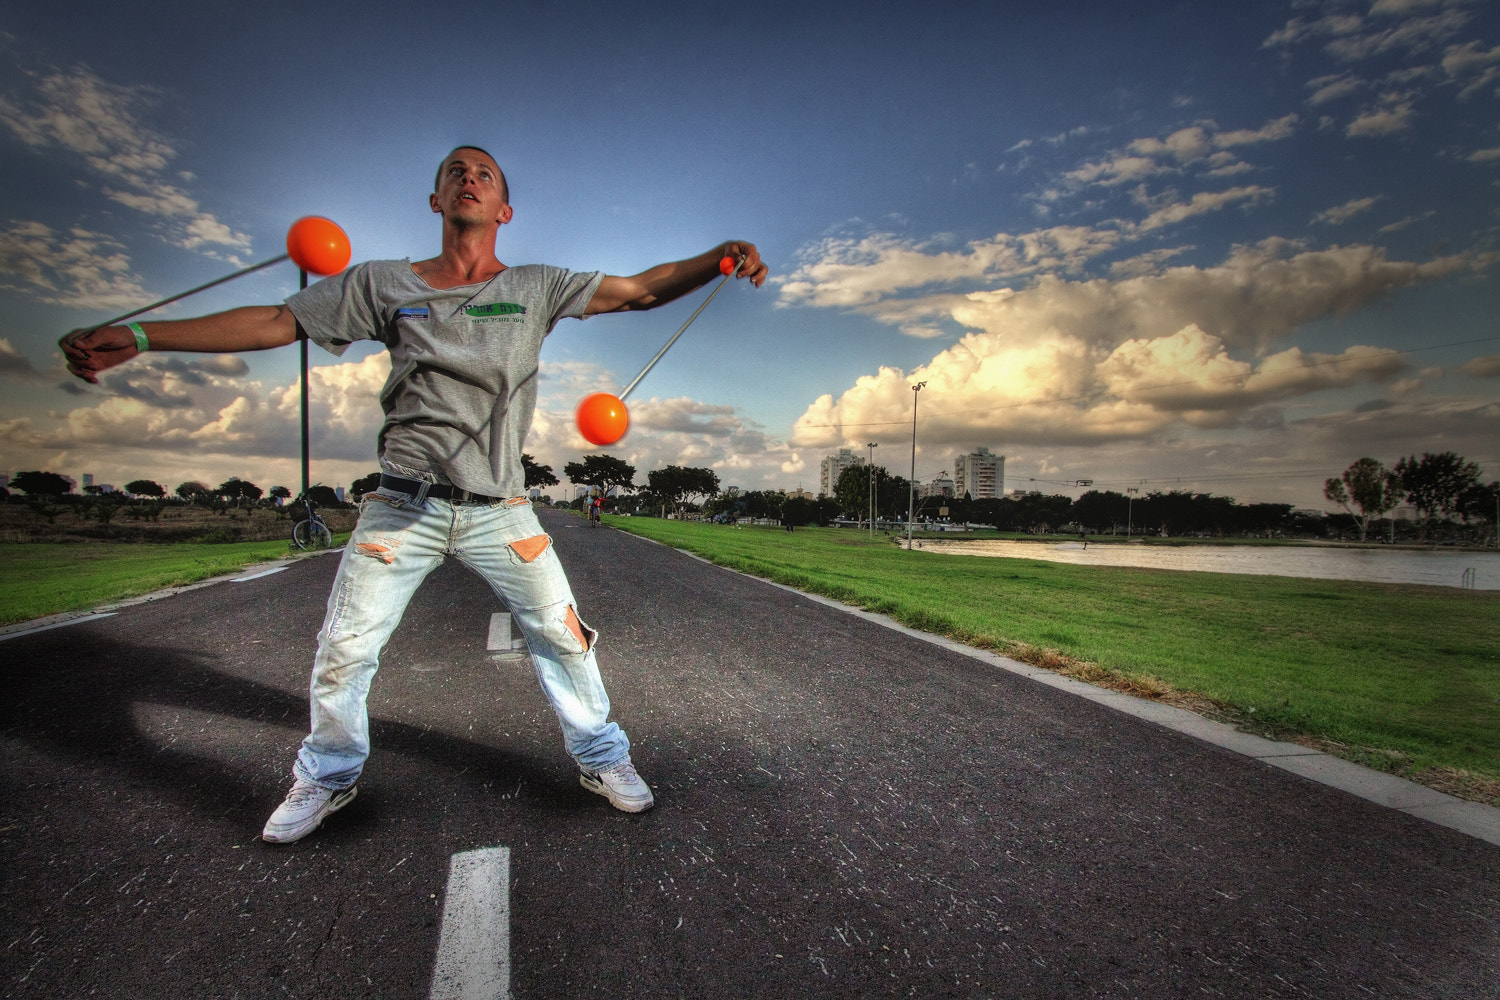 Photograph Juggling At The Park III by Noam Mymon on 500px